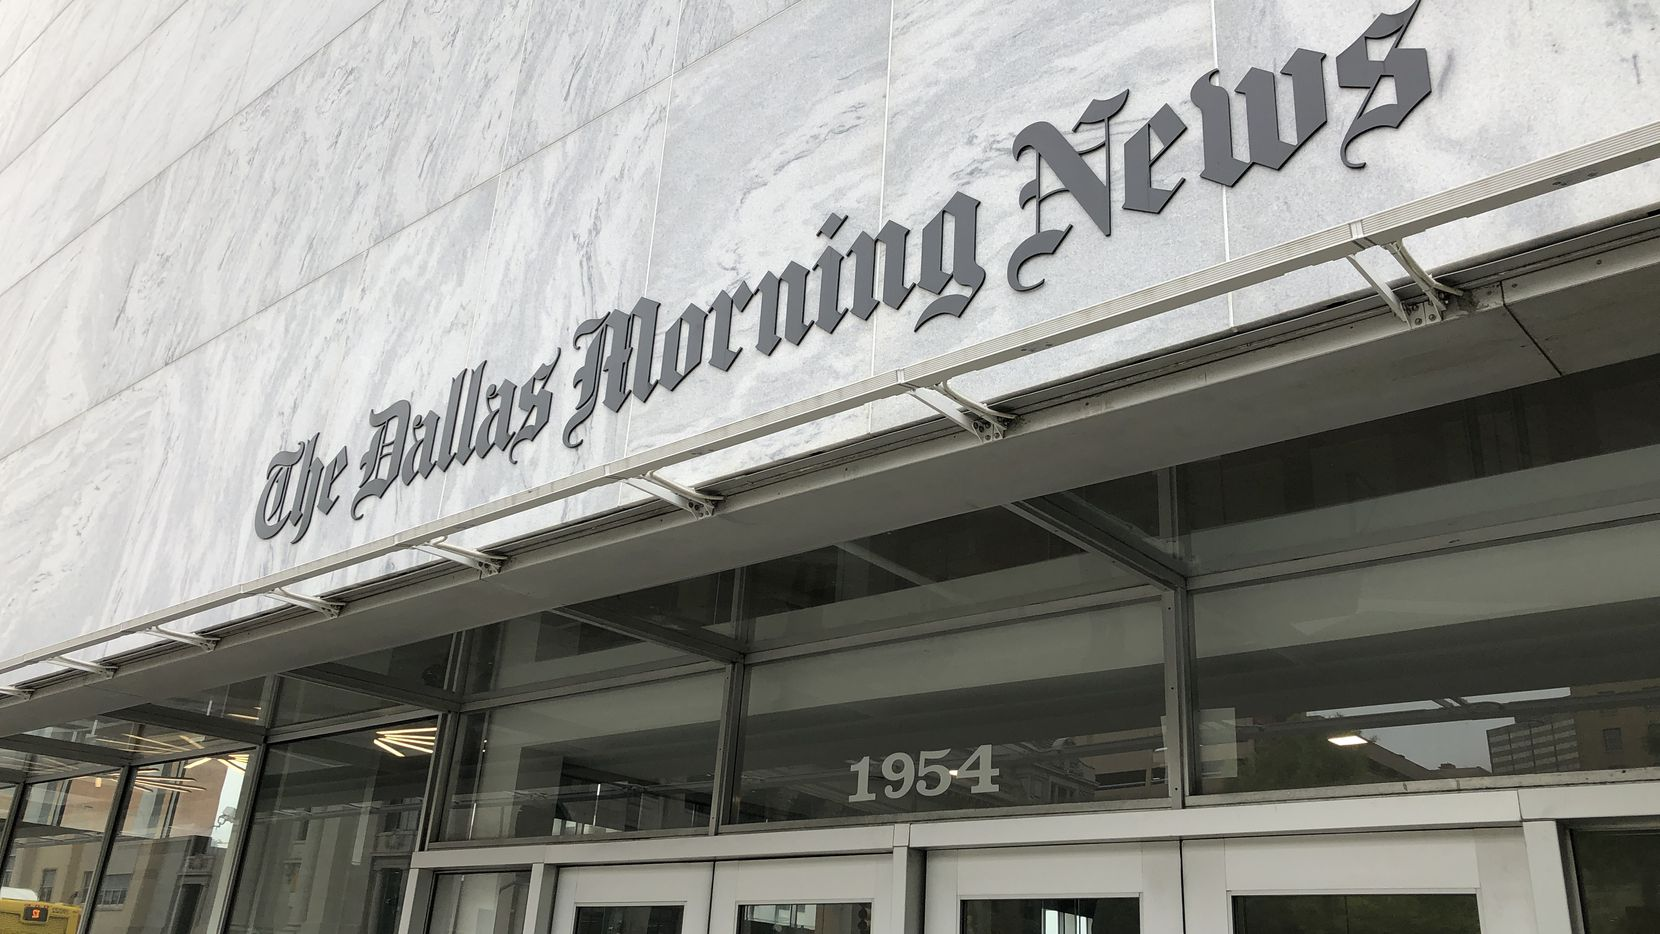 The Dallas Morning News' parent company, A. H. Belo Corporation, is the oldest continuously operated company in Texas.